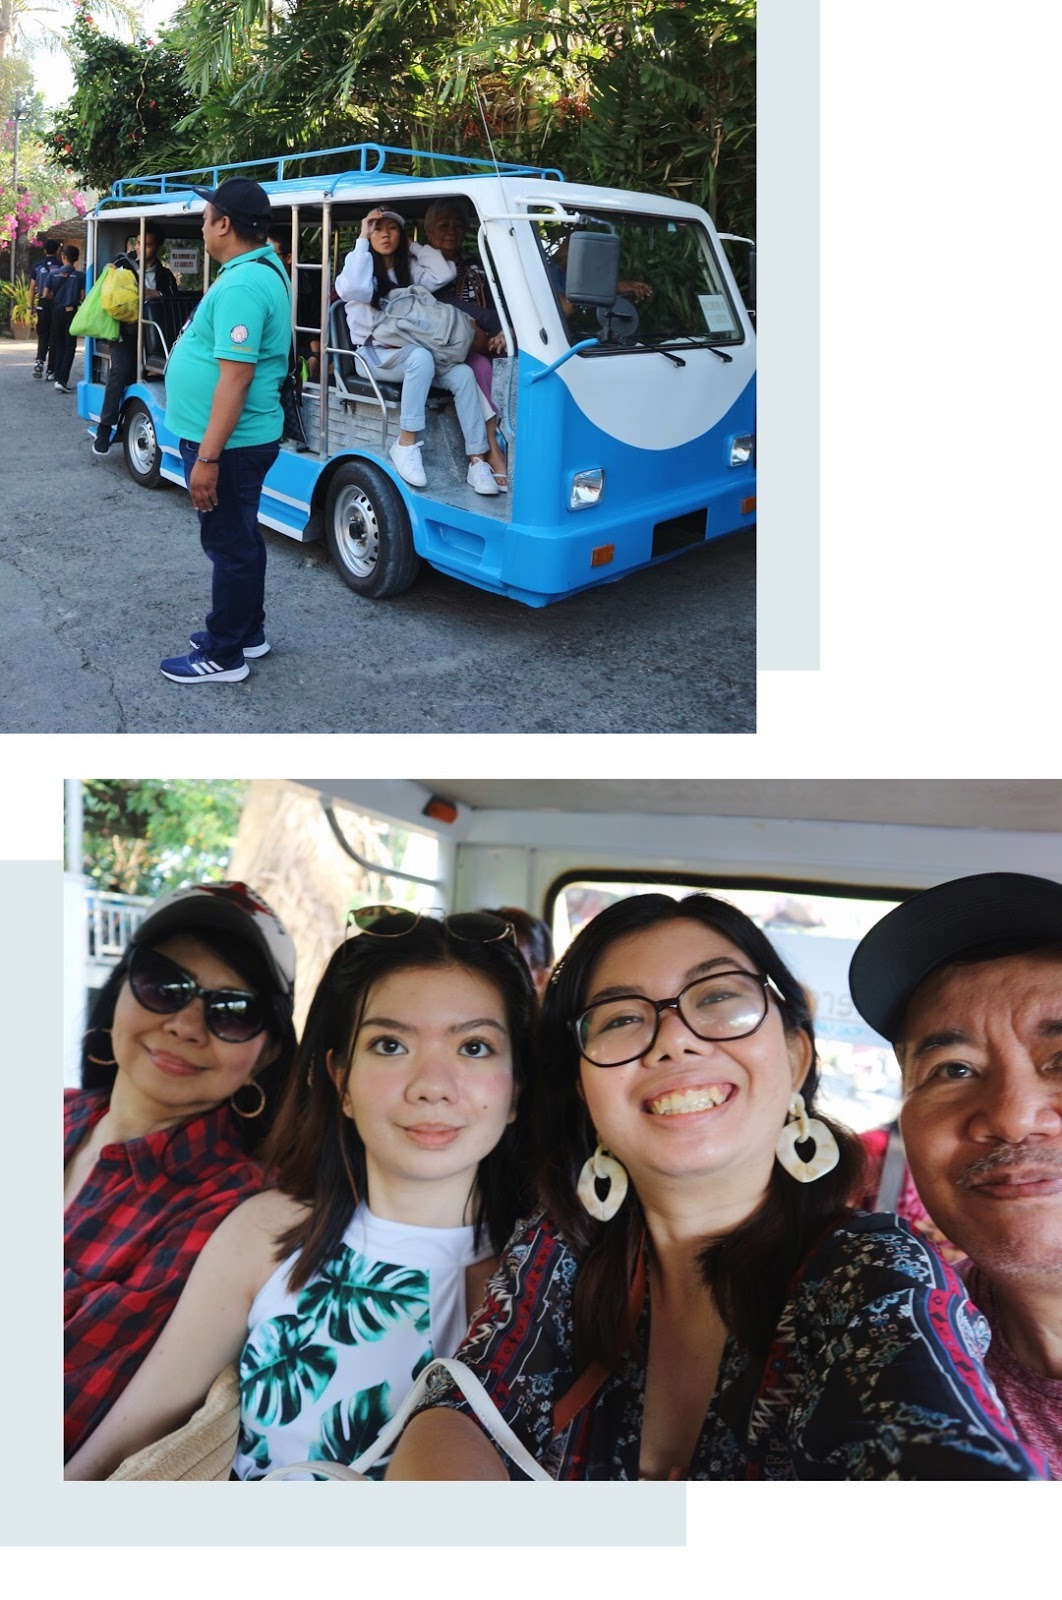 Sherco Resort and Ecology Park Shuttle Service